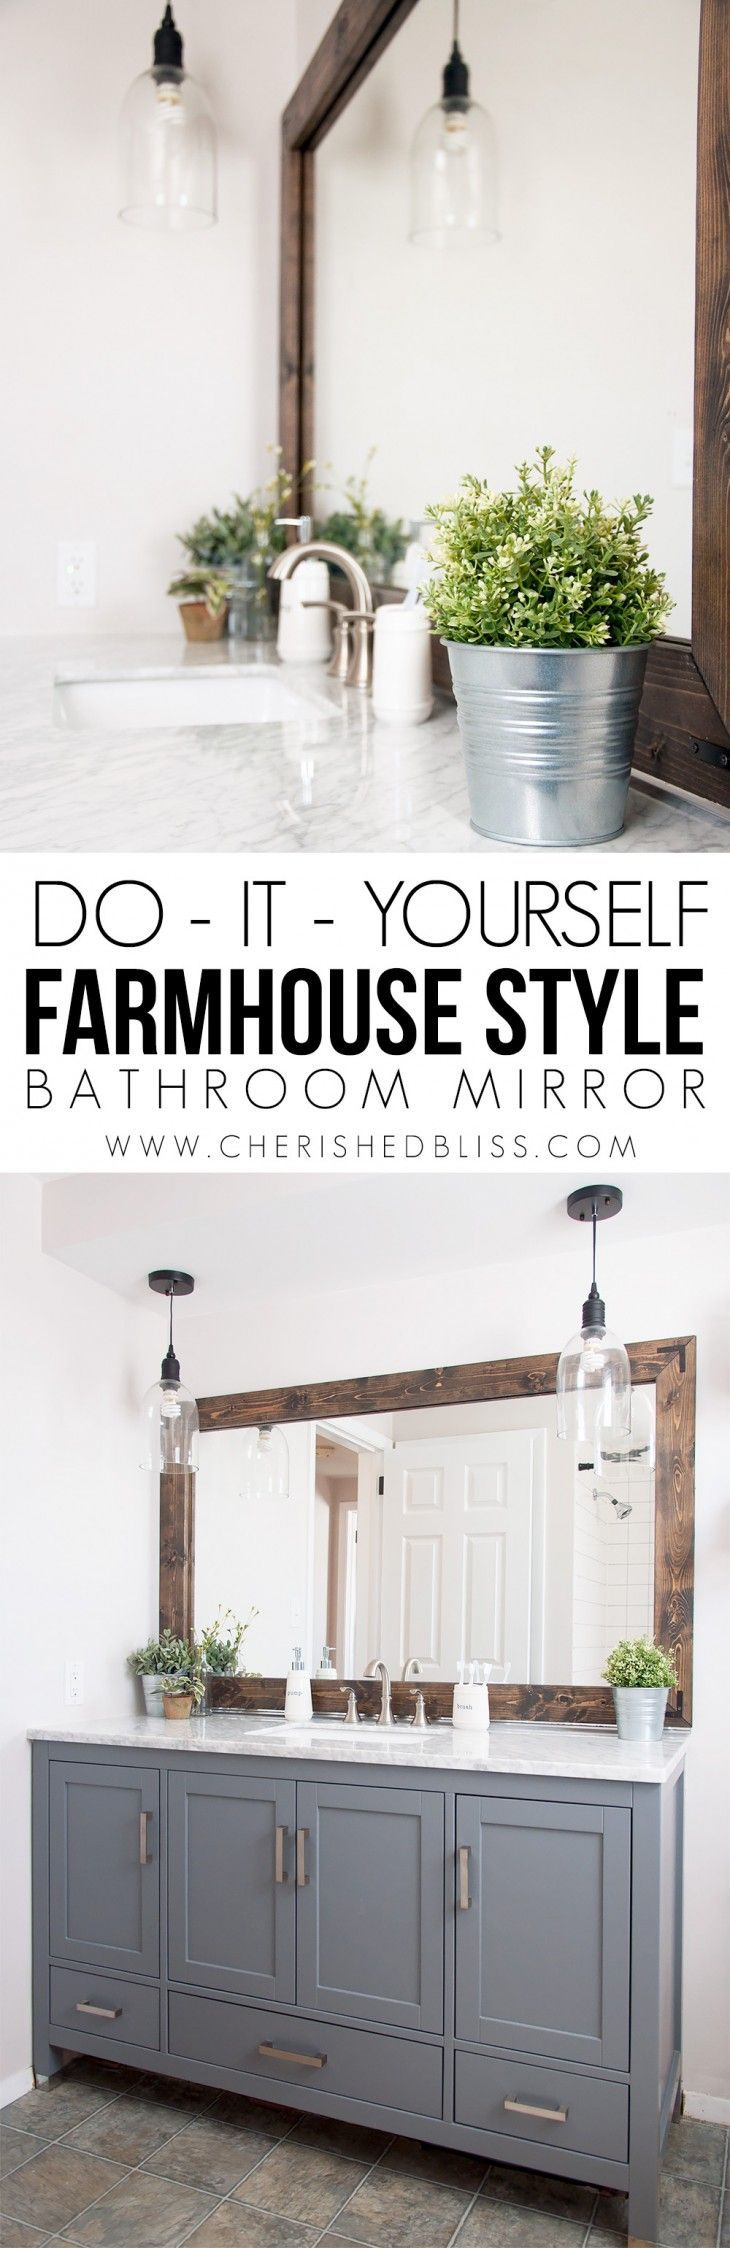 best 25+ farmhouse mirrors ideas on pinterest | farmhouse wall